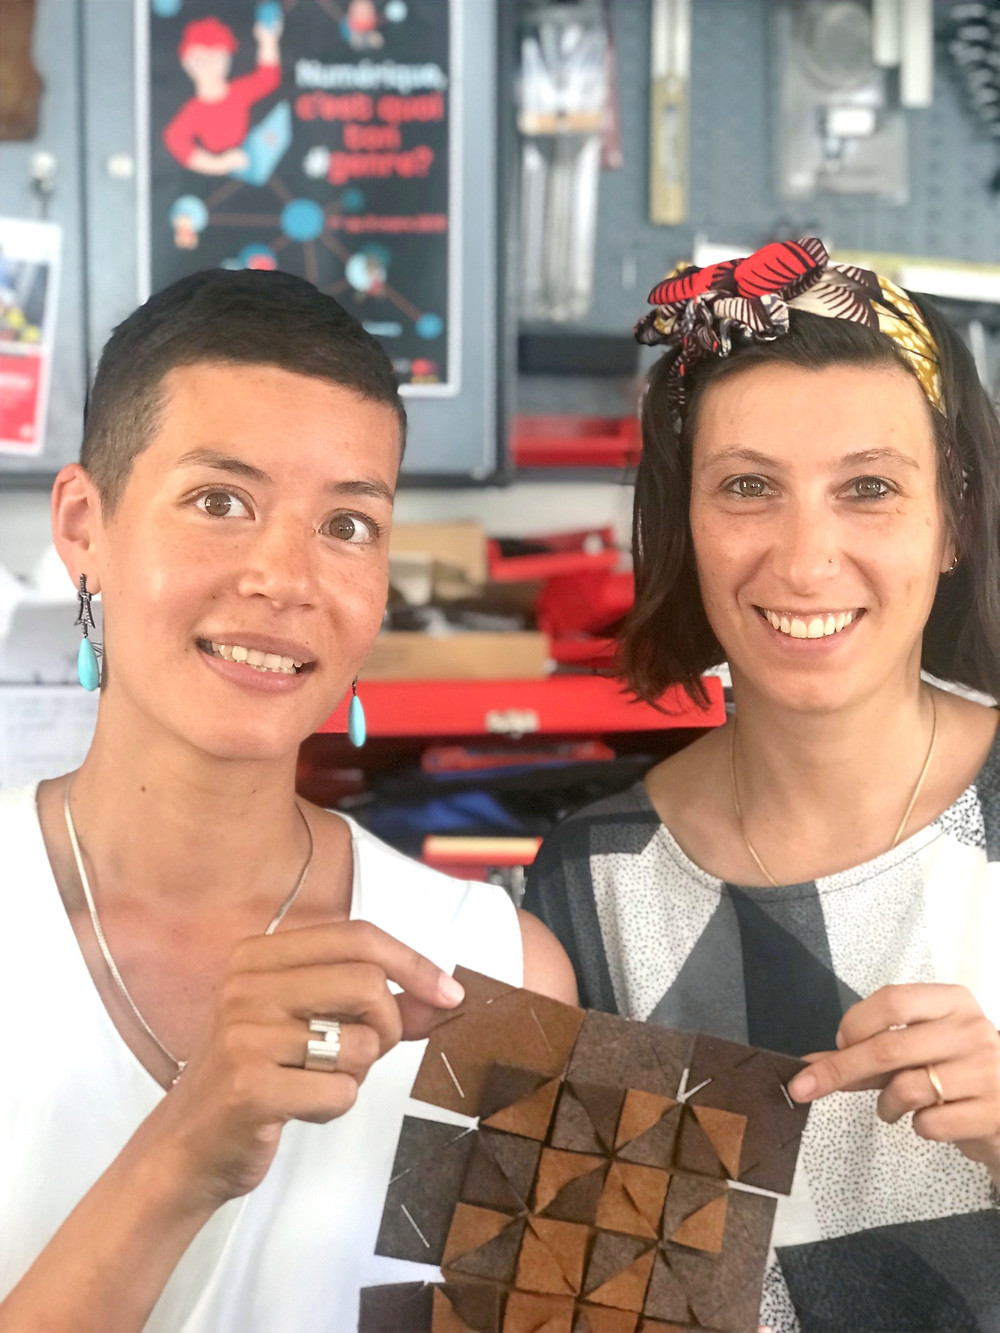 Jeanne from apesigned & Cristina from Fablab Onl'fati at the upcycling workshop, This Black Friday, buy nothing & make SMTHG!